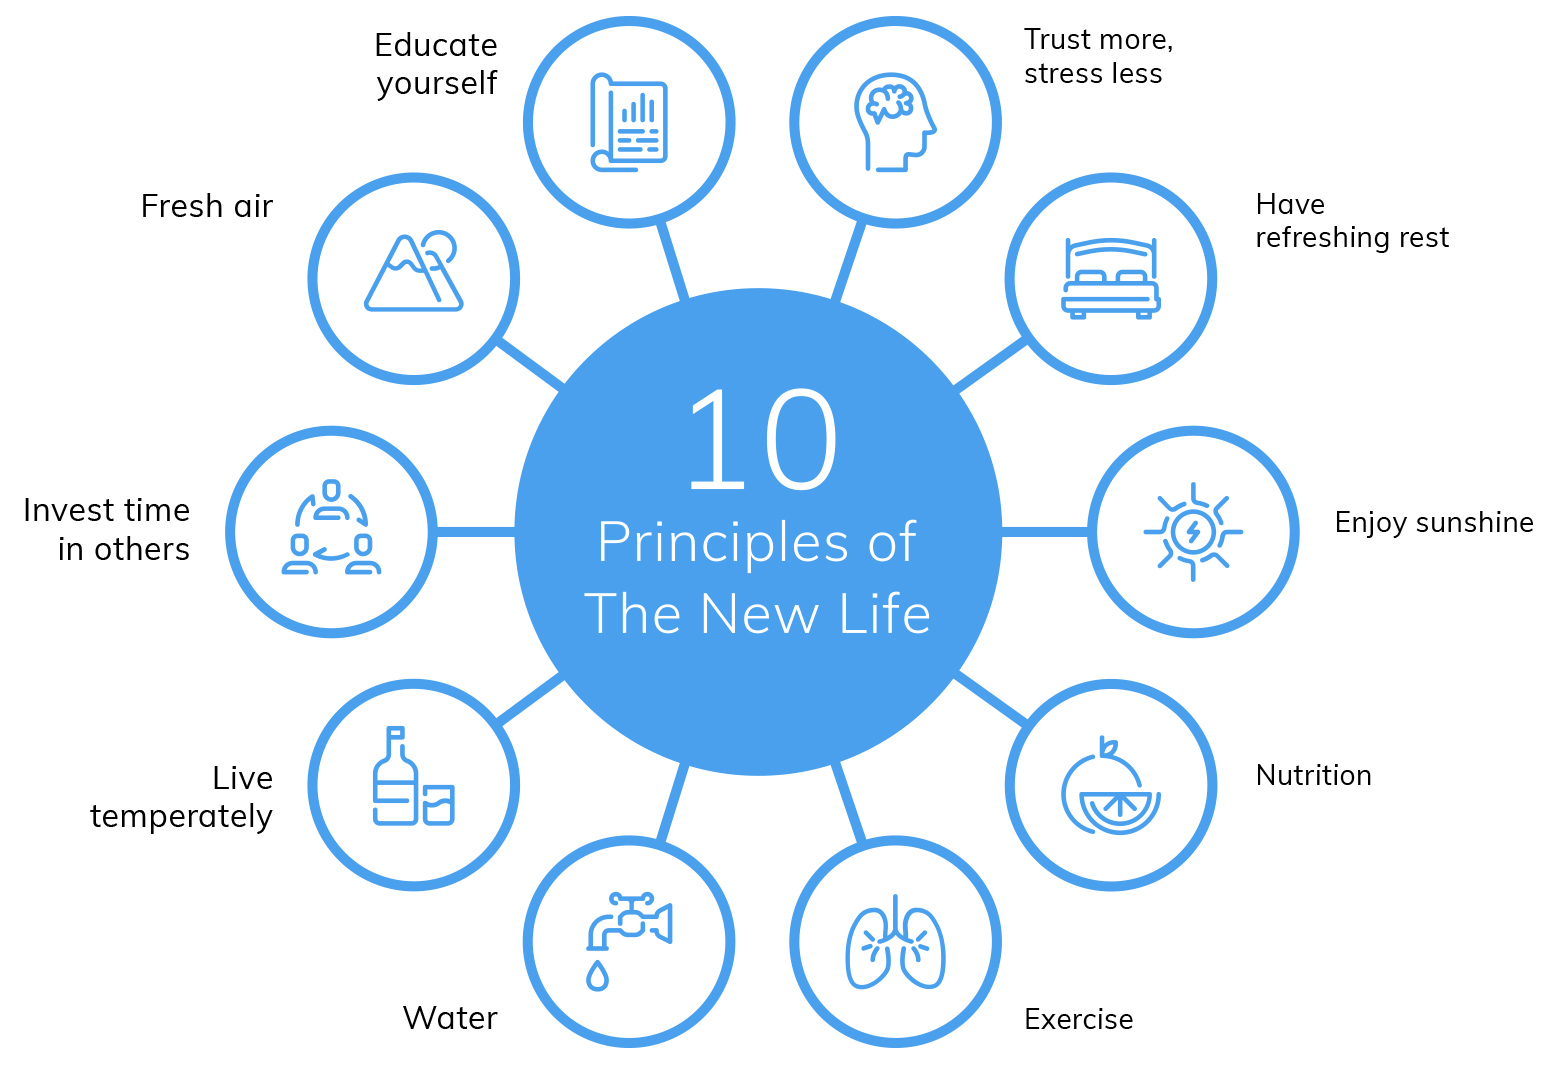 Ten principles of The New Life